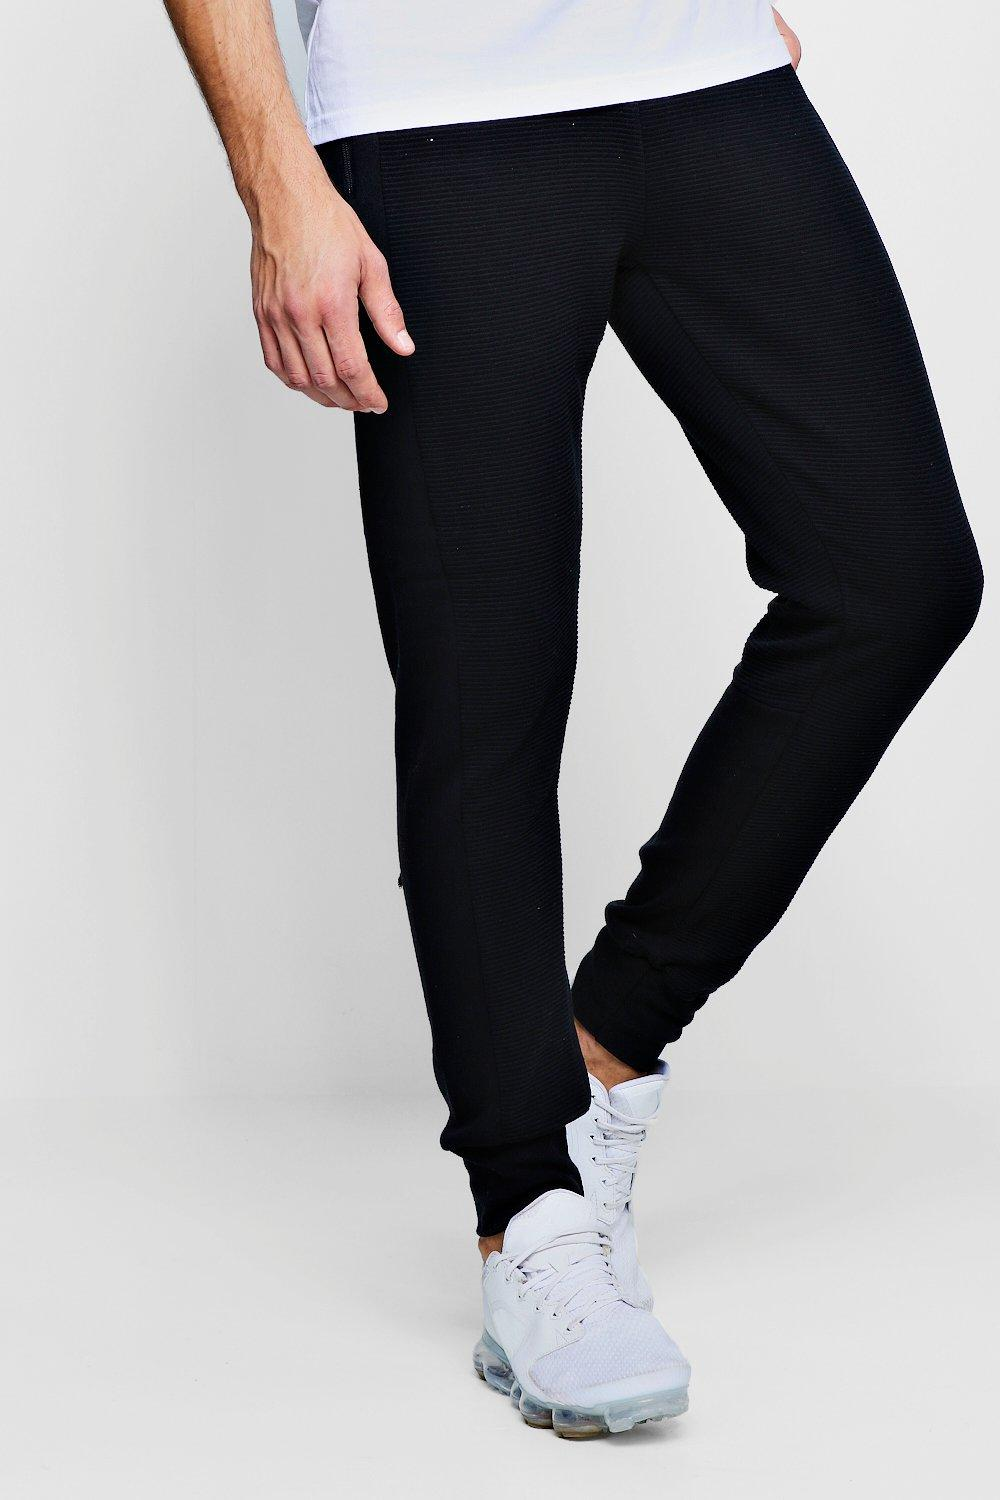 Jersey Side Checked black Joggers Panel O778qU